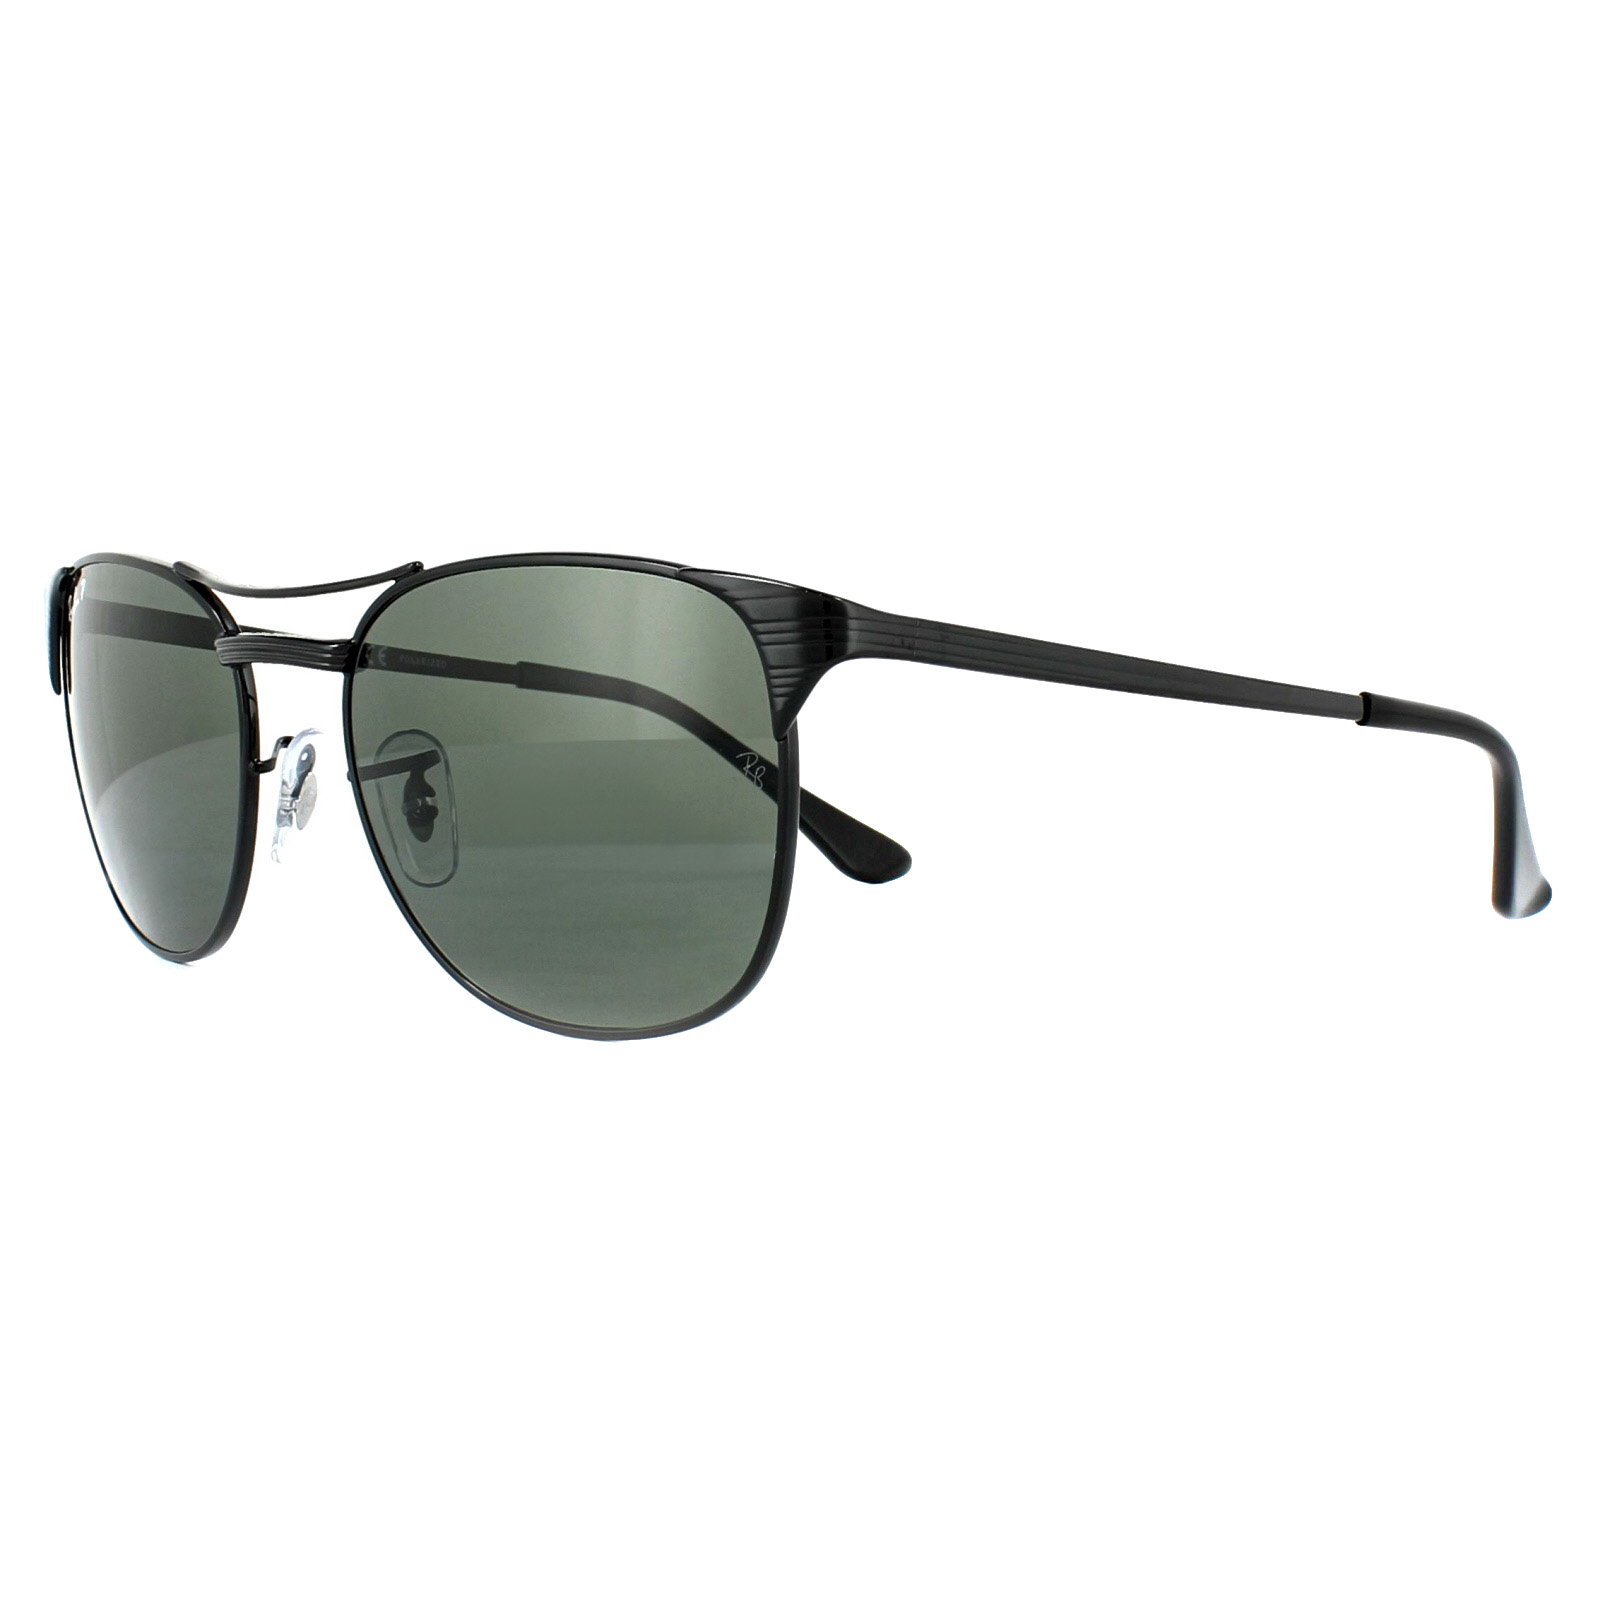 b68a09719a Cheap Ray-Ban Signet 3429 Sunglasses - Discounted Sunglasses